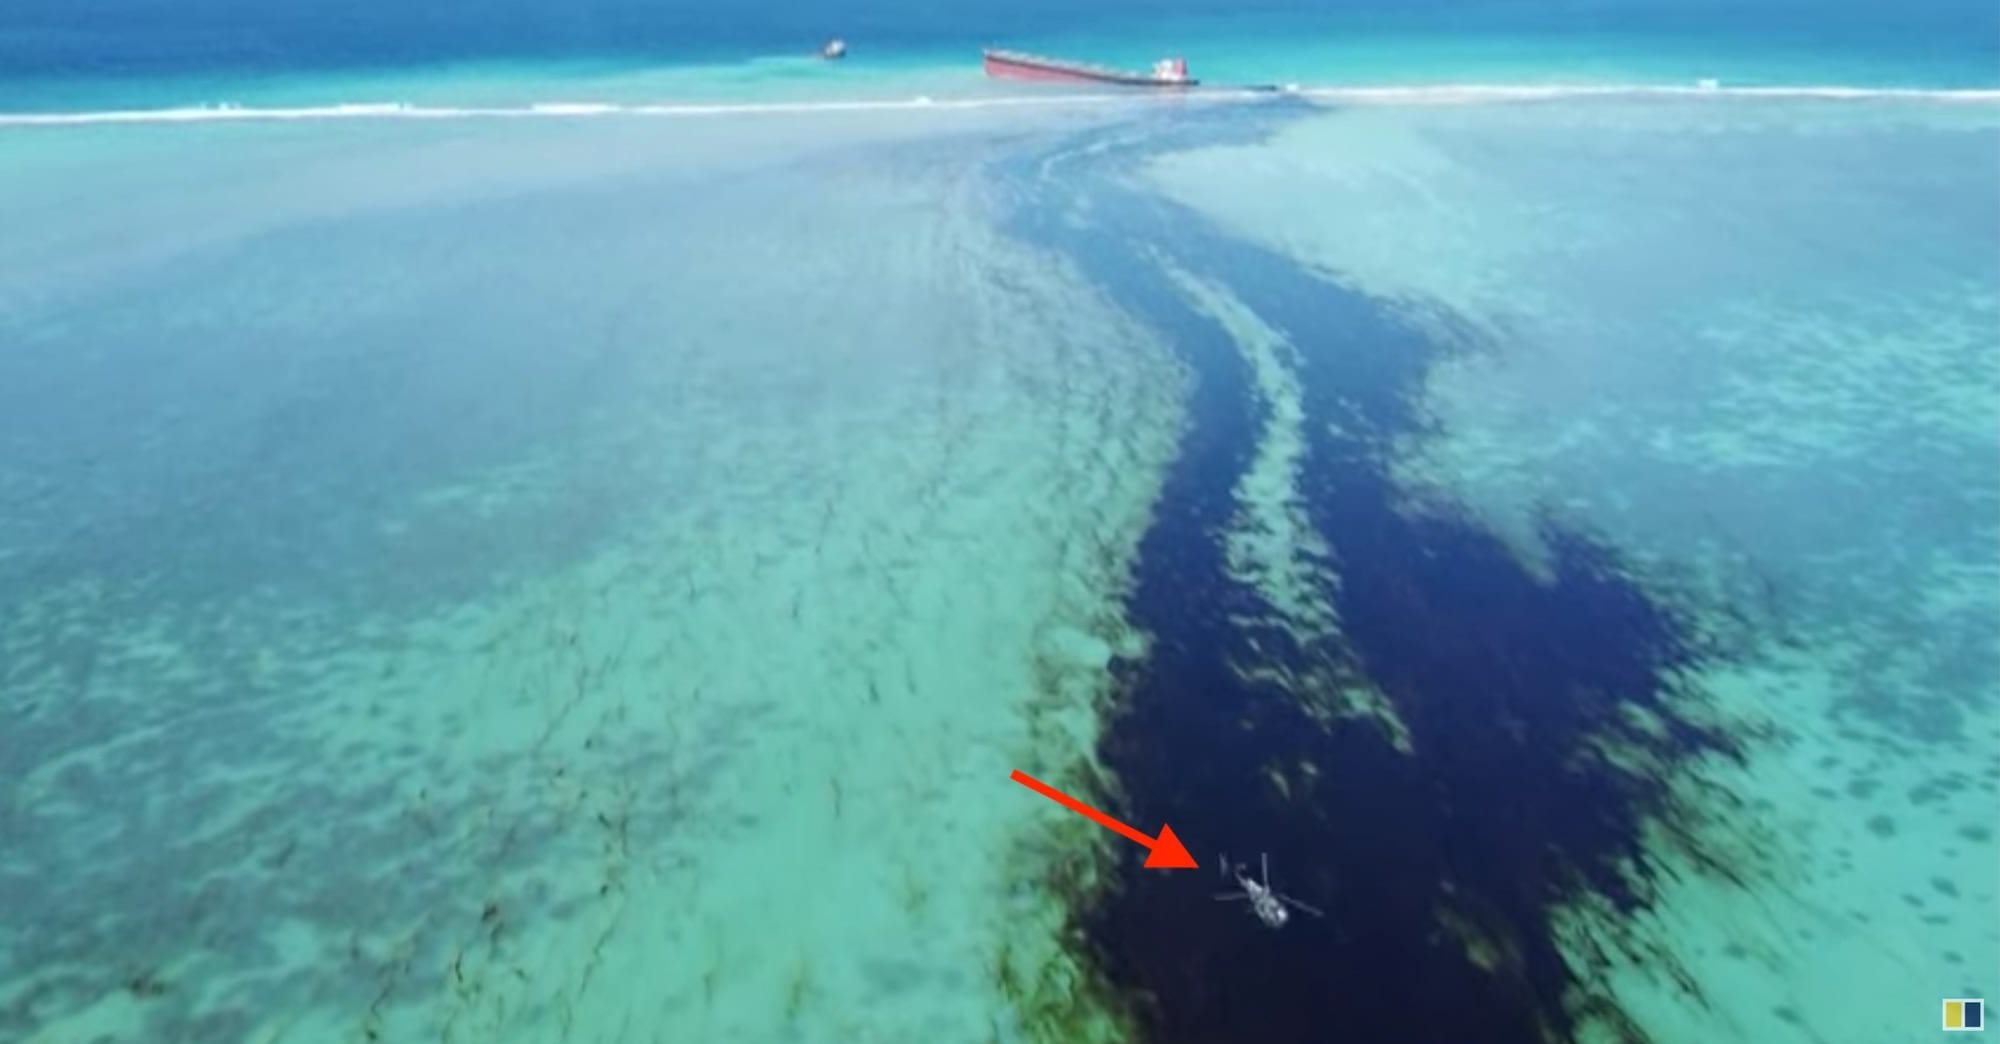 Disastrous oil spill in Mauritius shown in drone footage